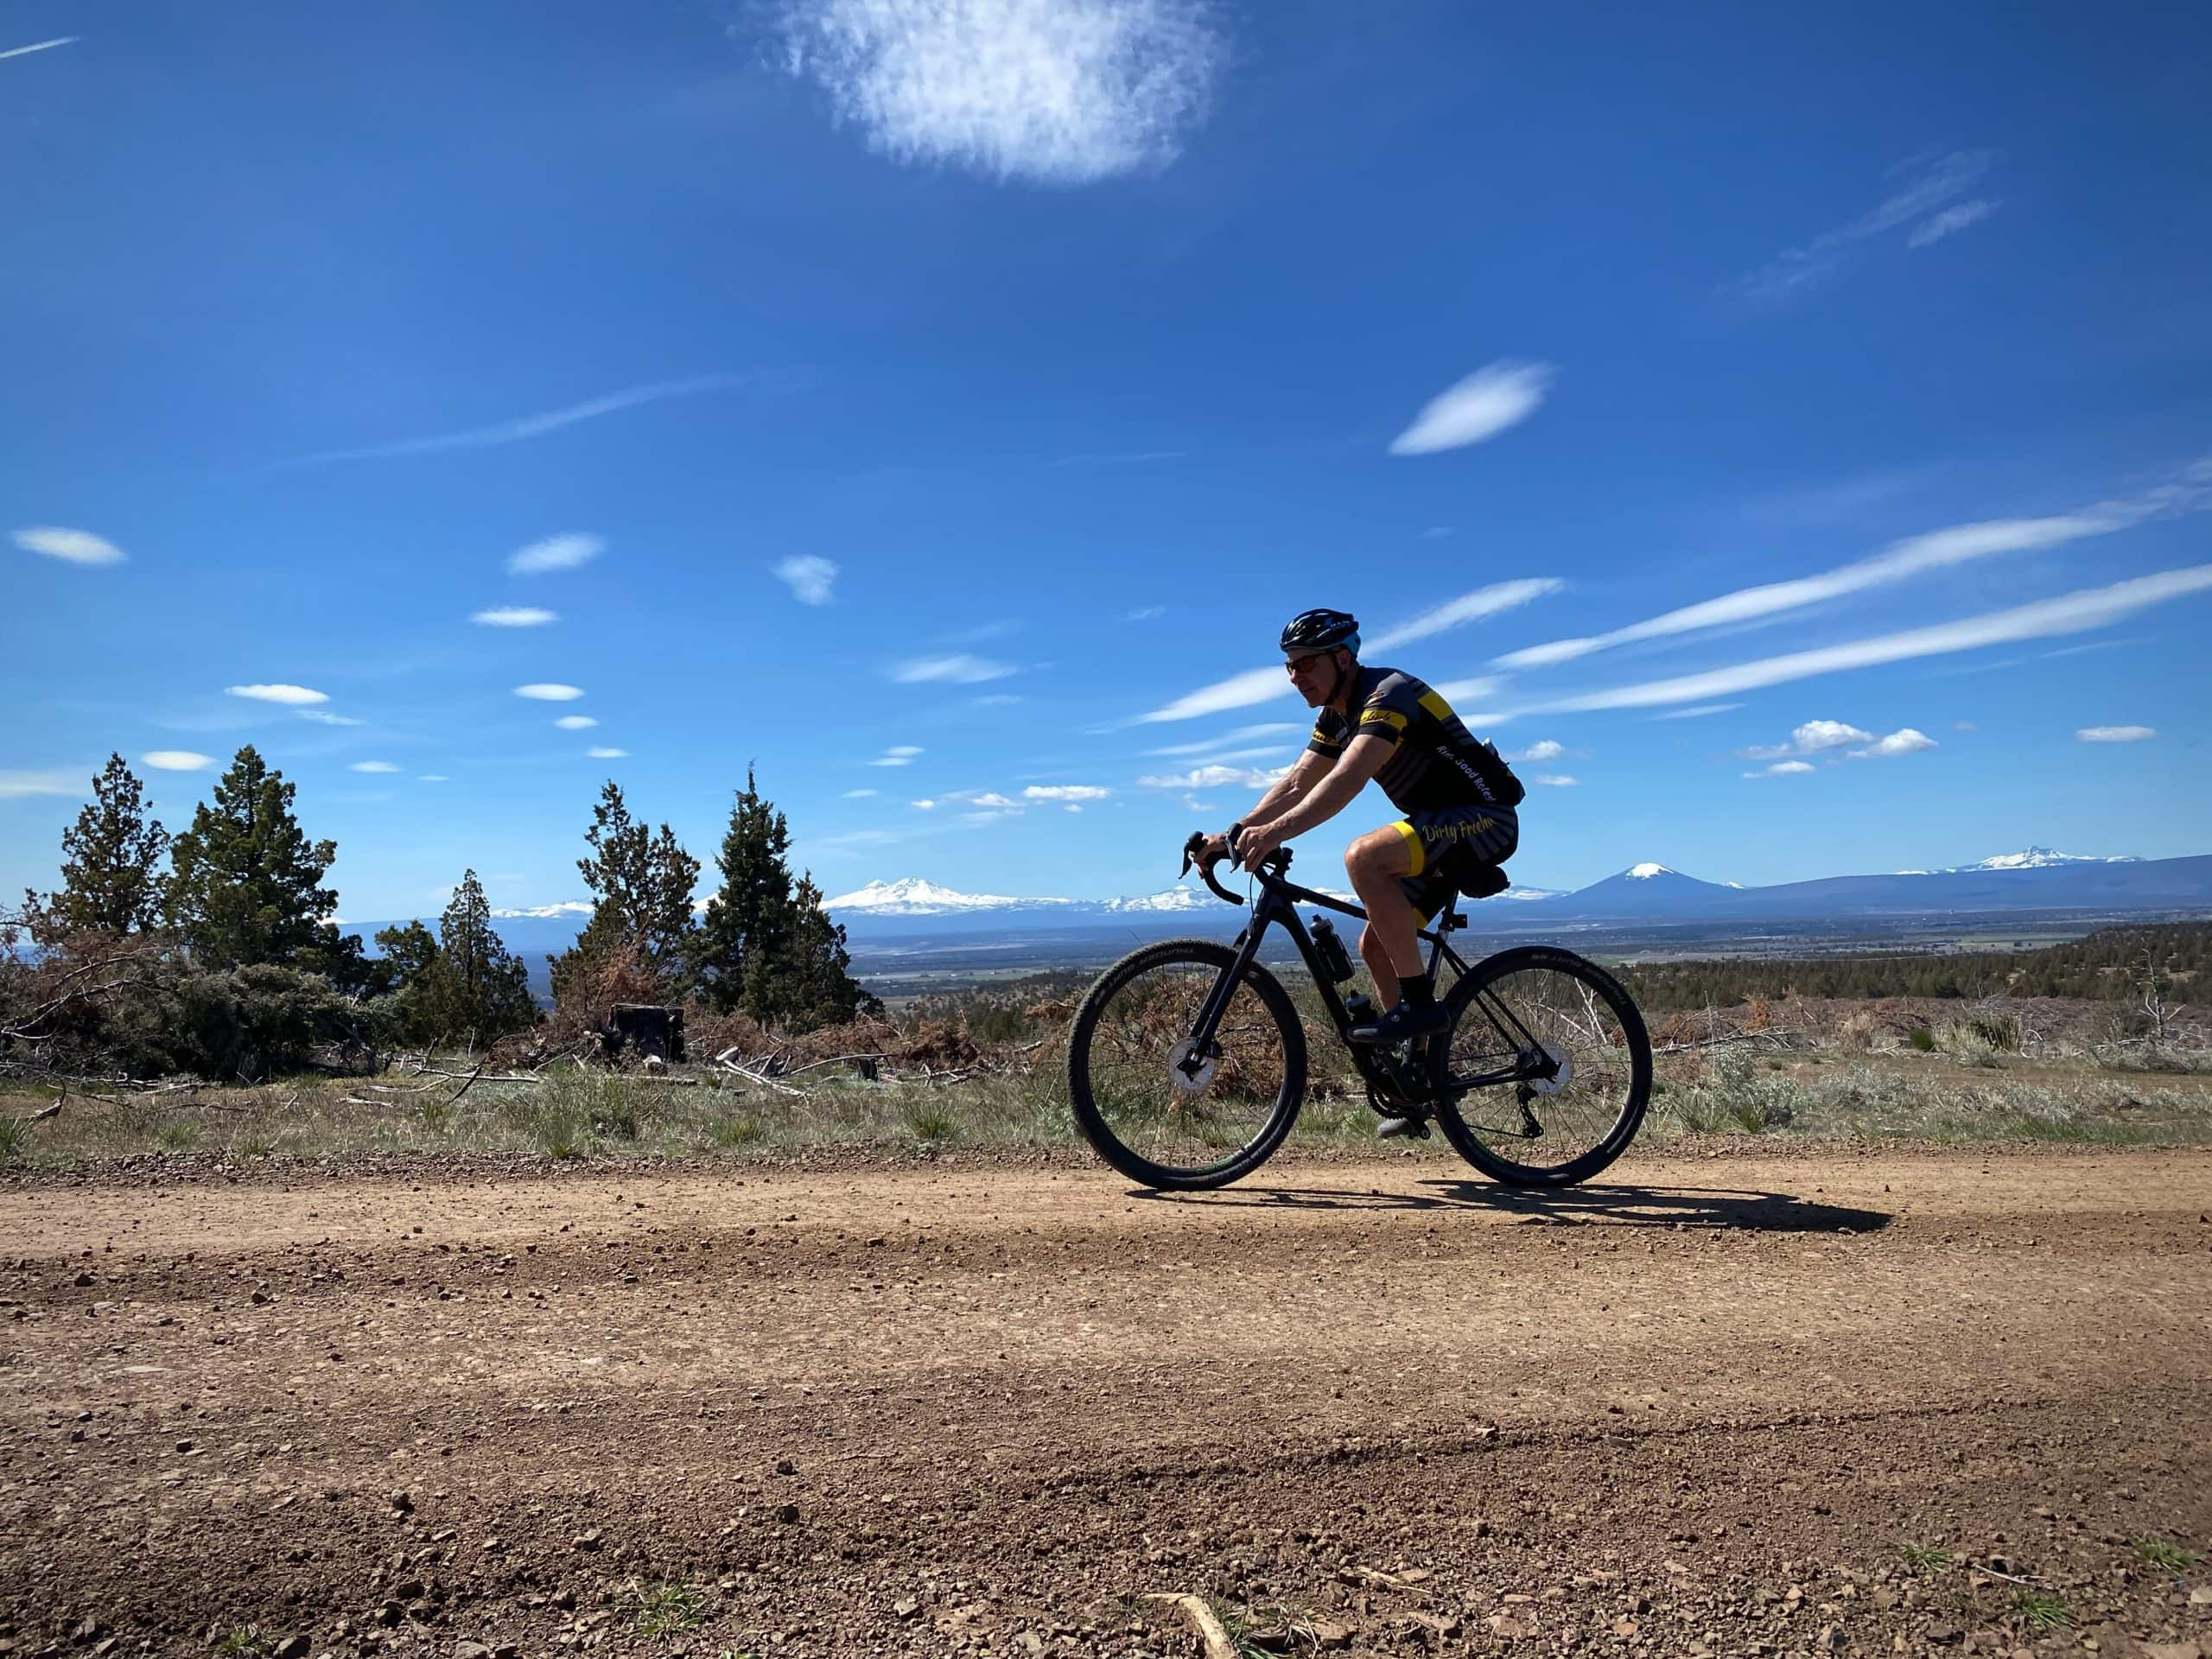 Gravel cyclist on forest service road in the National Grassland with views of the Cascade mountains in Central Oregon.